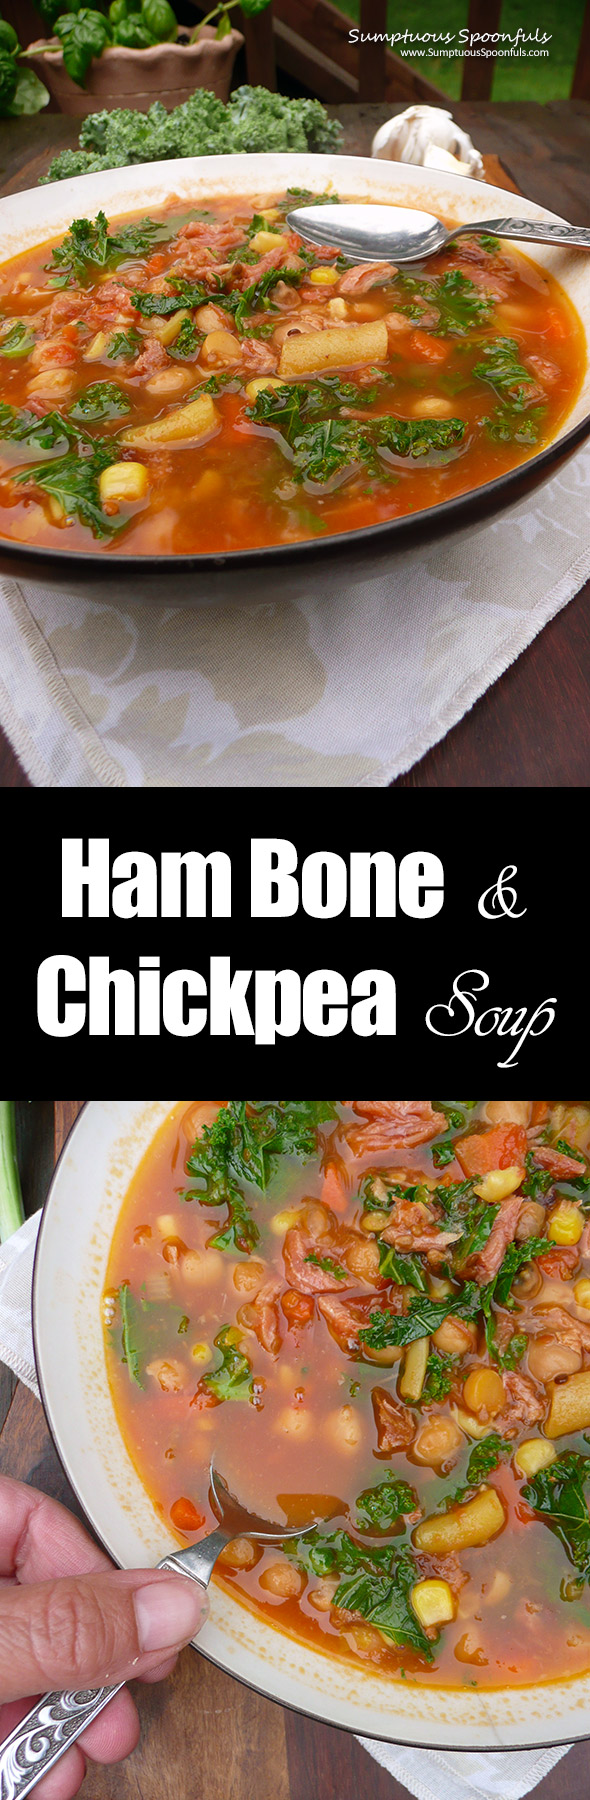 Ham Bone & Chickpea Soup ~Sumptuous Spoonfuls #homemade #ham #bean #soup #recipe